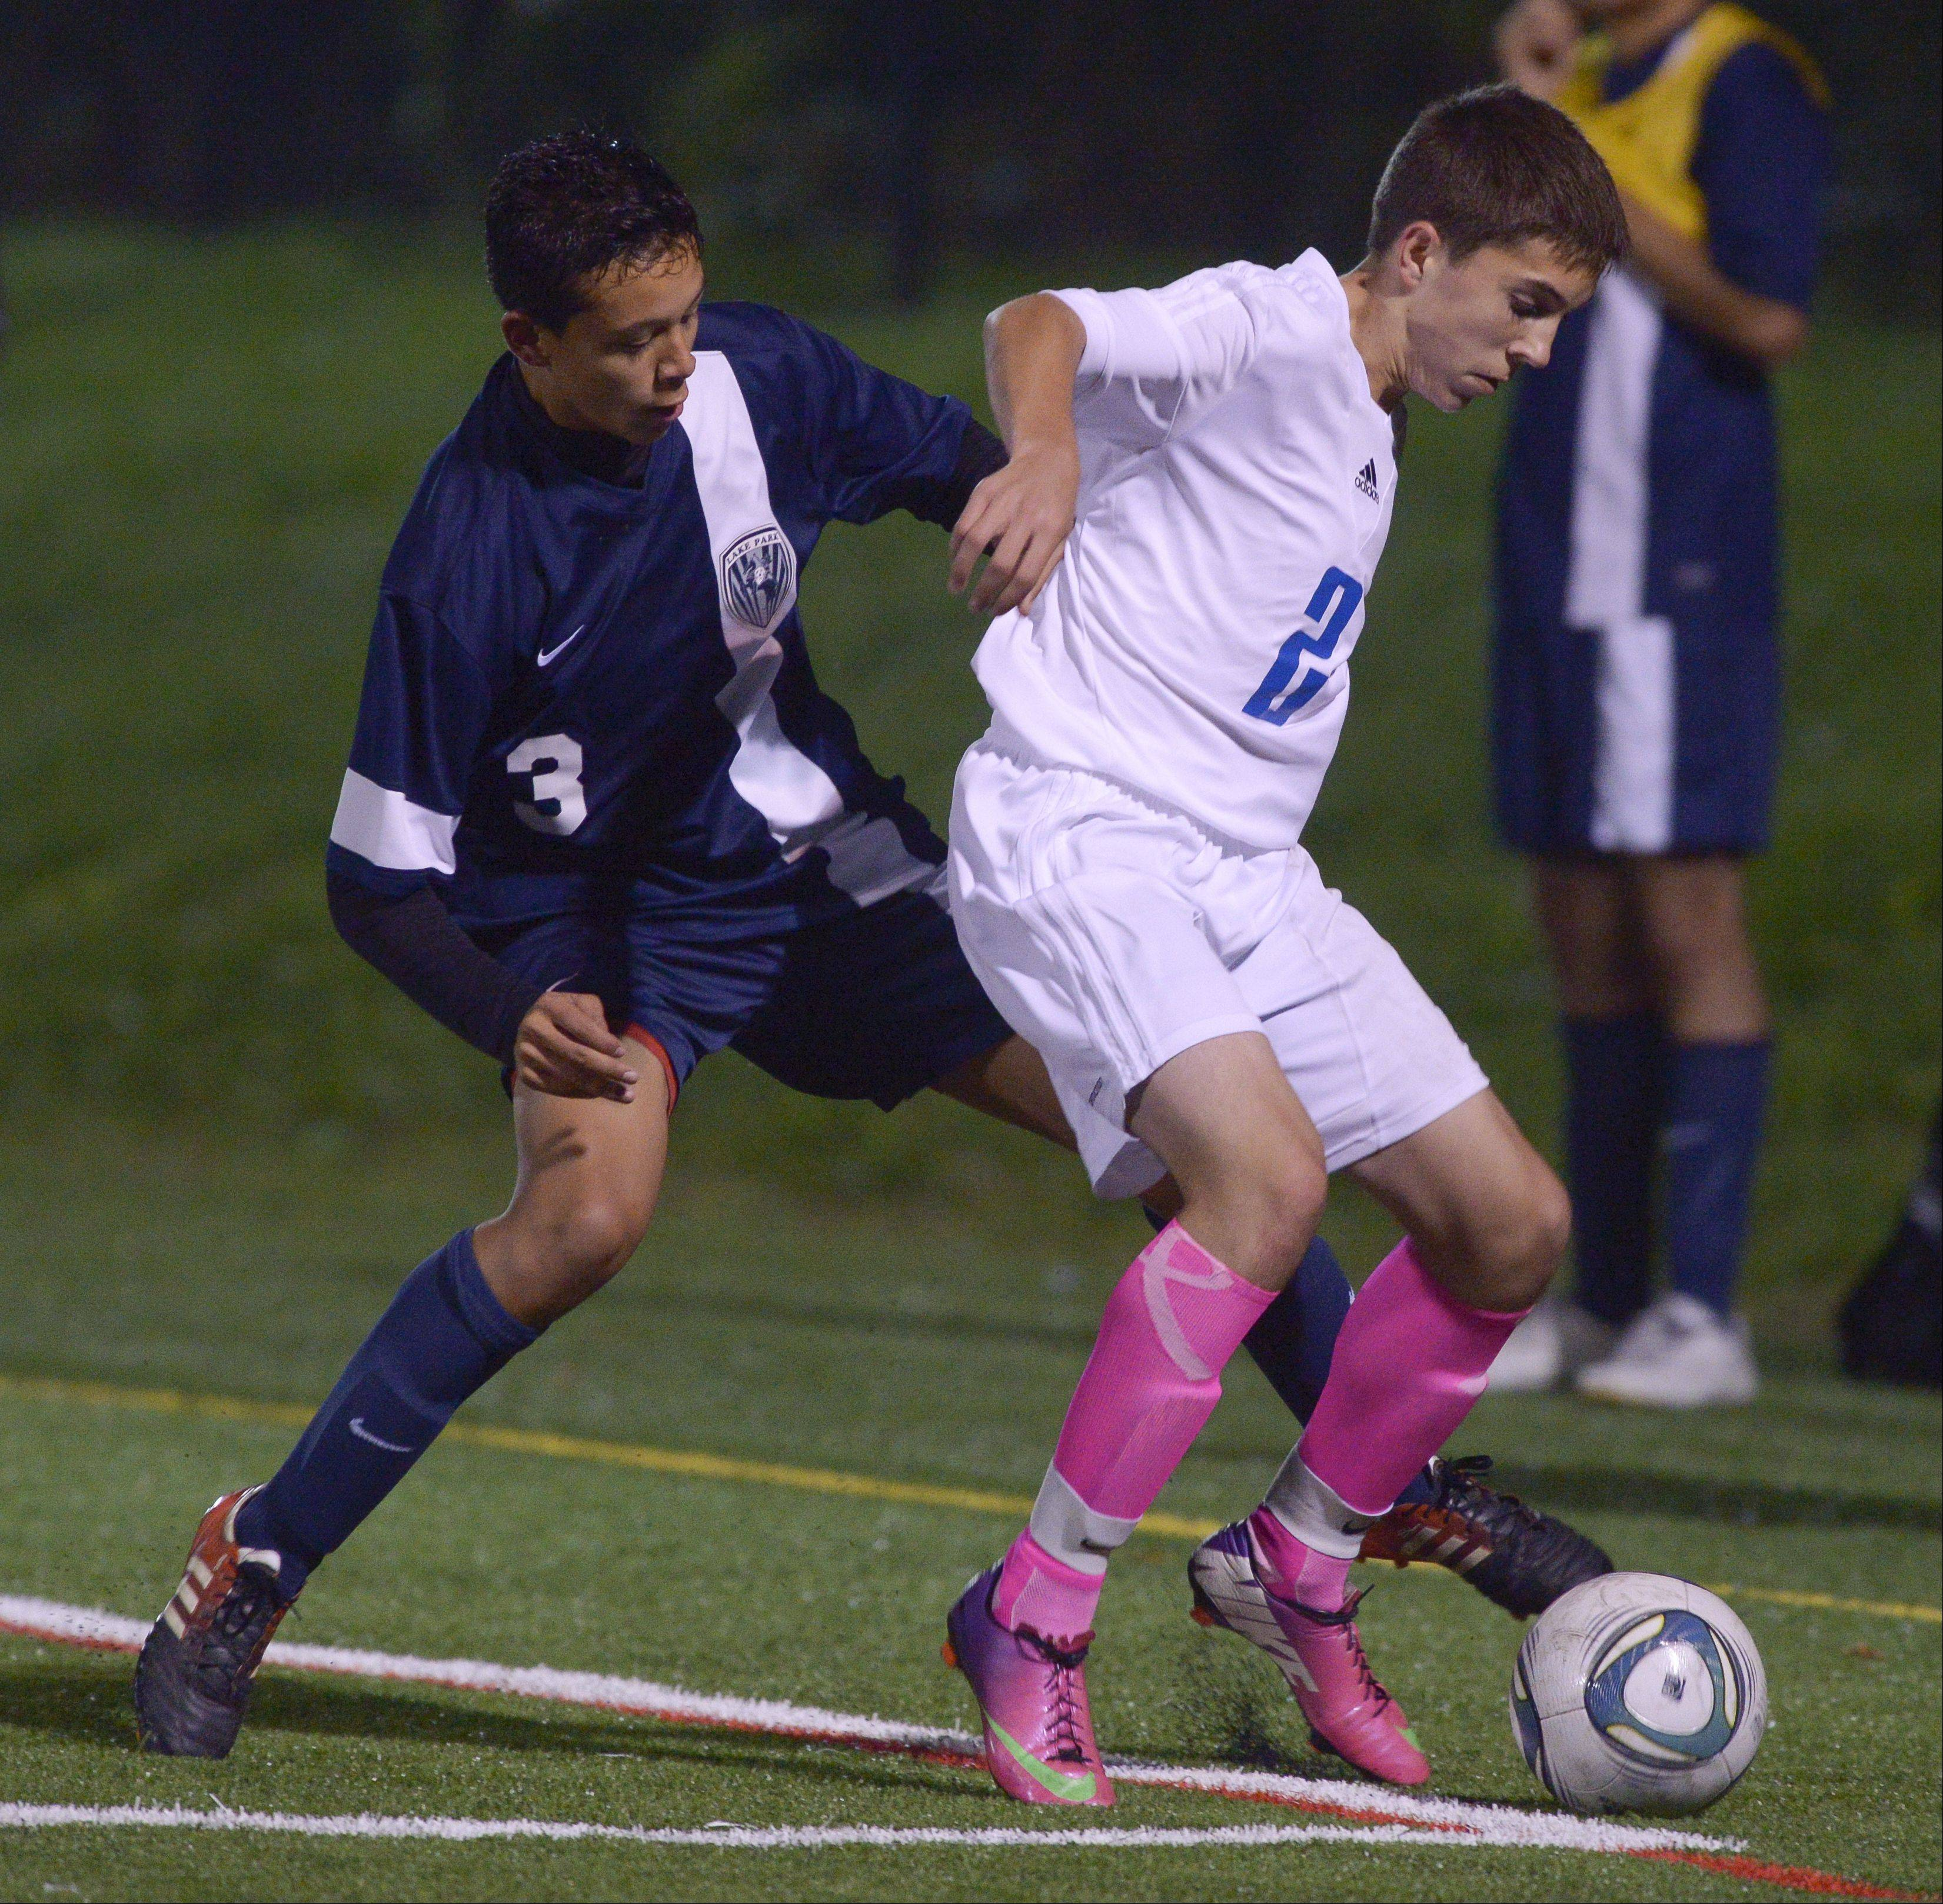 Kris Lopez of Lake Park and Bernard Plawinski of Fenton battle for control of the ball during varsity boys soccer in Bensonville, Thursday.